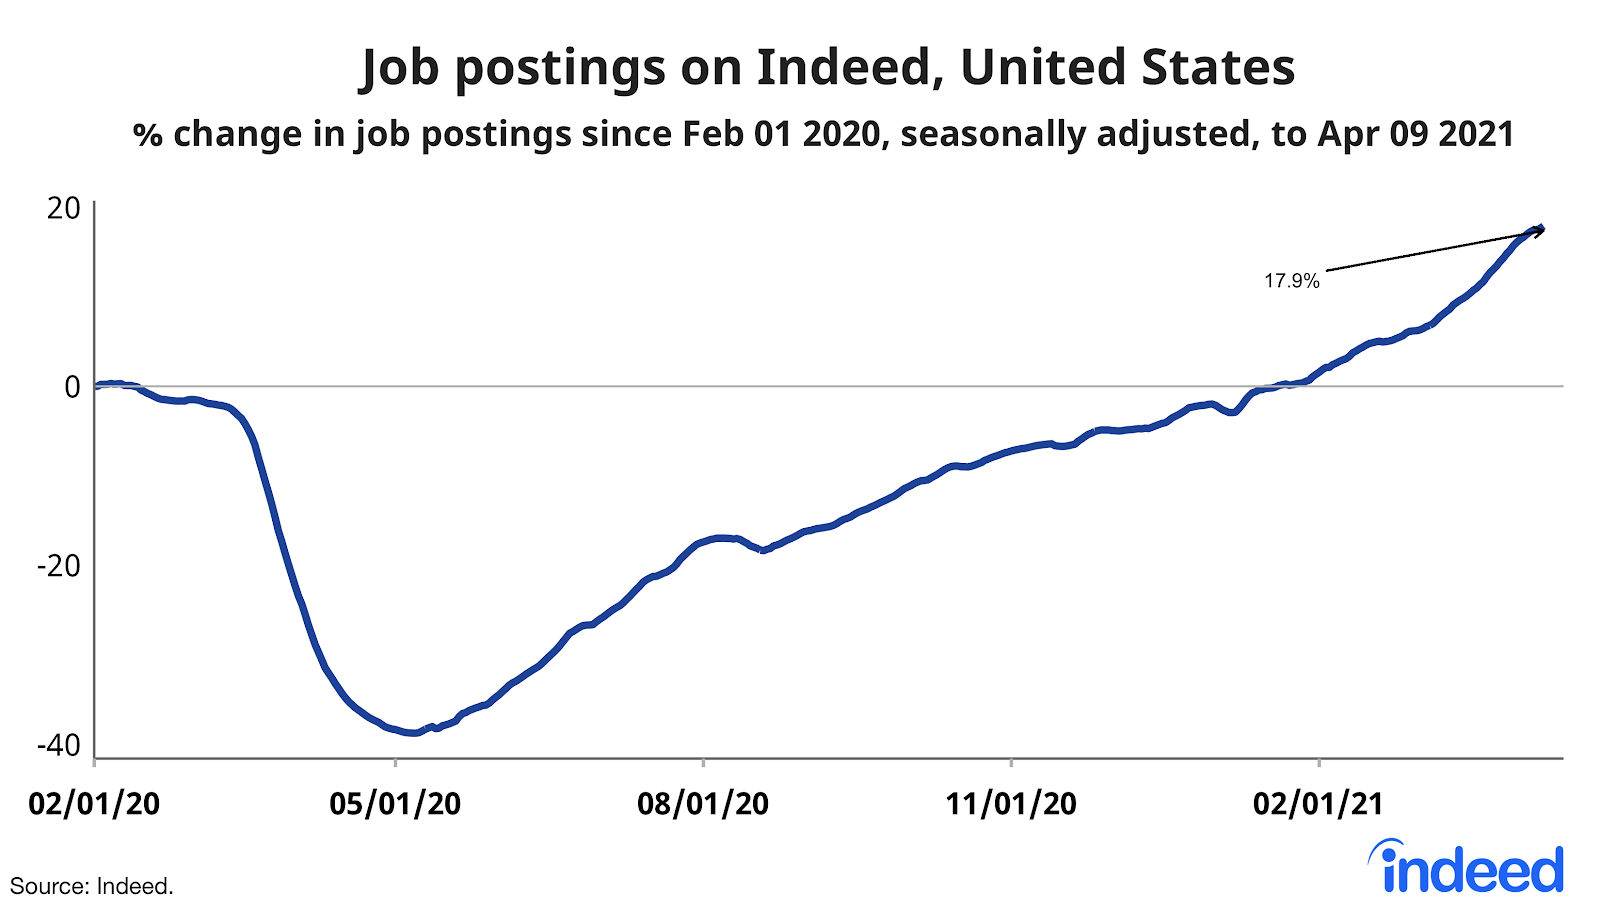 Line graph showing job postings on Indeed, United States